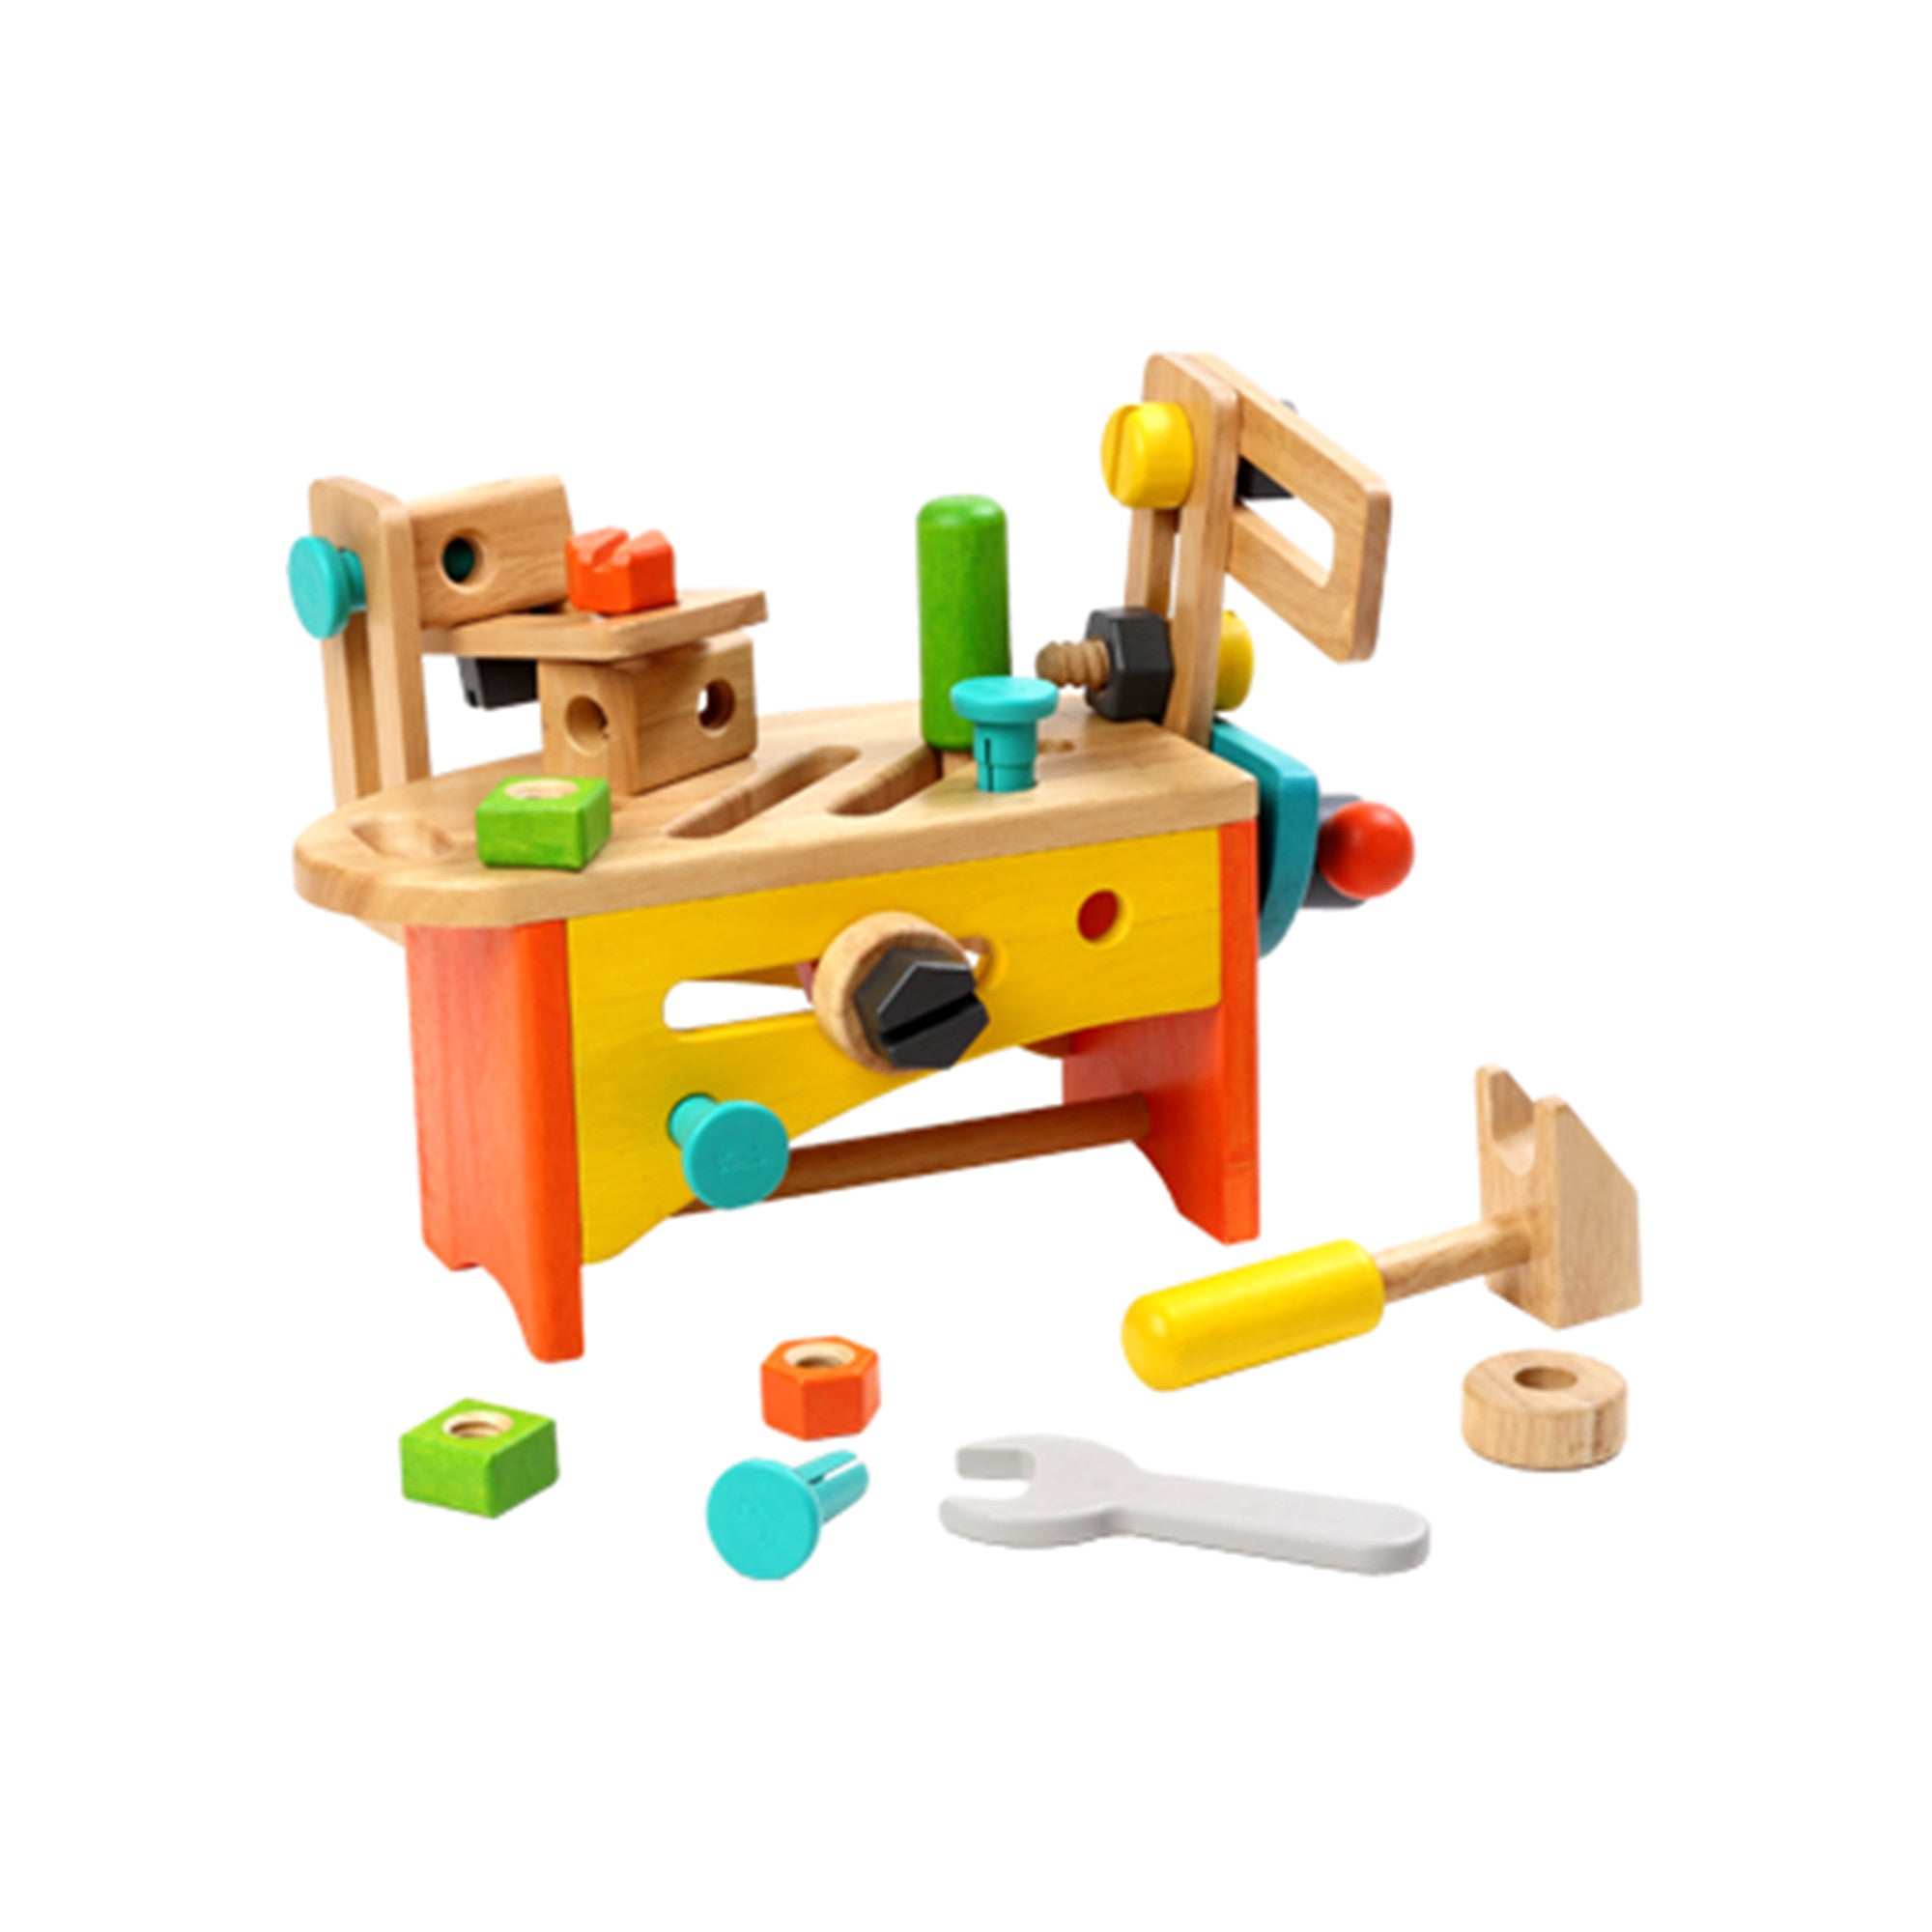 Wooden Toys Product : Wooden toy tool set kit little earth nest